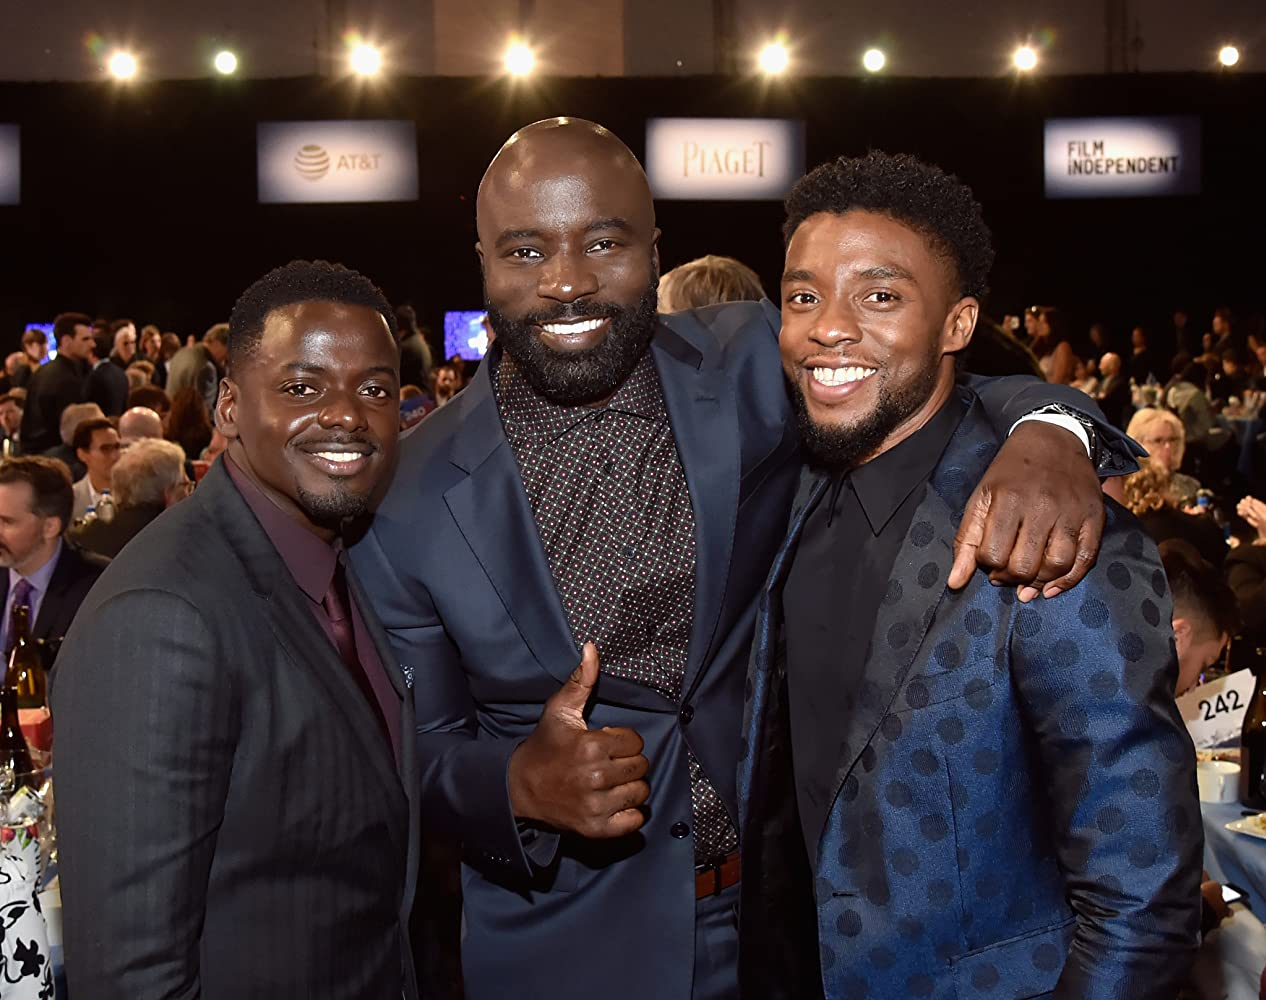 Chadwick Boseman, Mike Colter, and Daniel Kaluuya at an event for 33rd Film Independent Spirit Awards (2018)